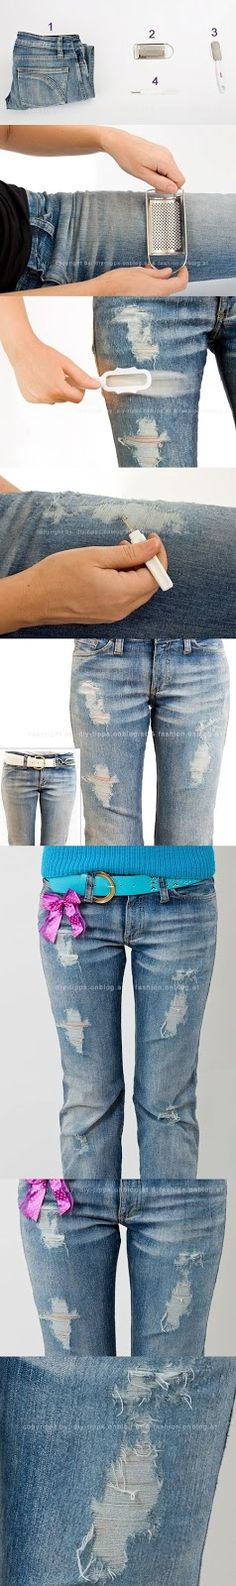 DIY Ripped Jeans Look crafts craft ideas easy crafts diy ideas diy crafts diy clothes easy diy fun diy craft clothes craft fashion fashion diy diy jeans craft jeans - Beautiful Diy Ideas Diy Fashion, Ideias Fashion, Fashion Tips, Jeans Fashion, Fashion Ideas, Fashion Clothes, Teens Clothes, Trendy Fashion, Summer Clothes